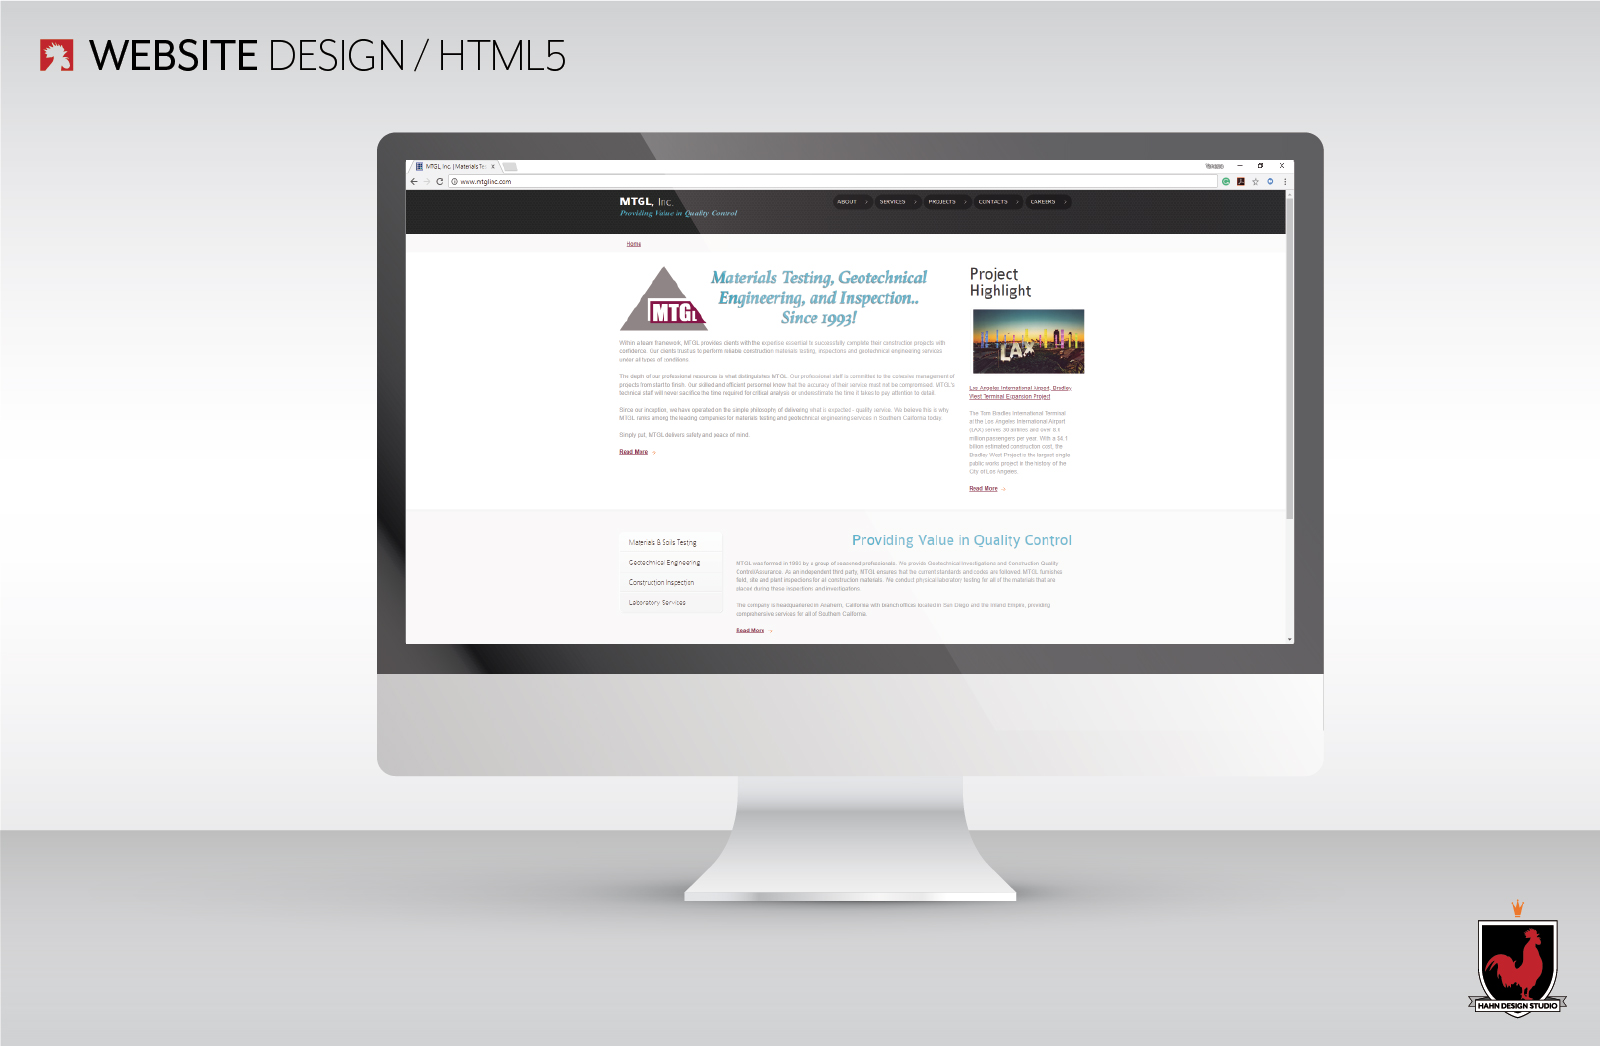 Website Design, HTML5 | MTGL, Inc., Hahn Design Studio, San Marcos, California